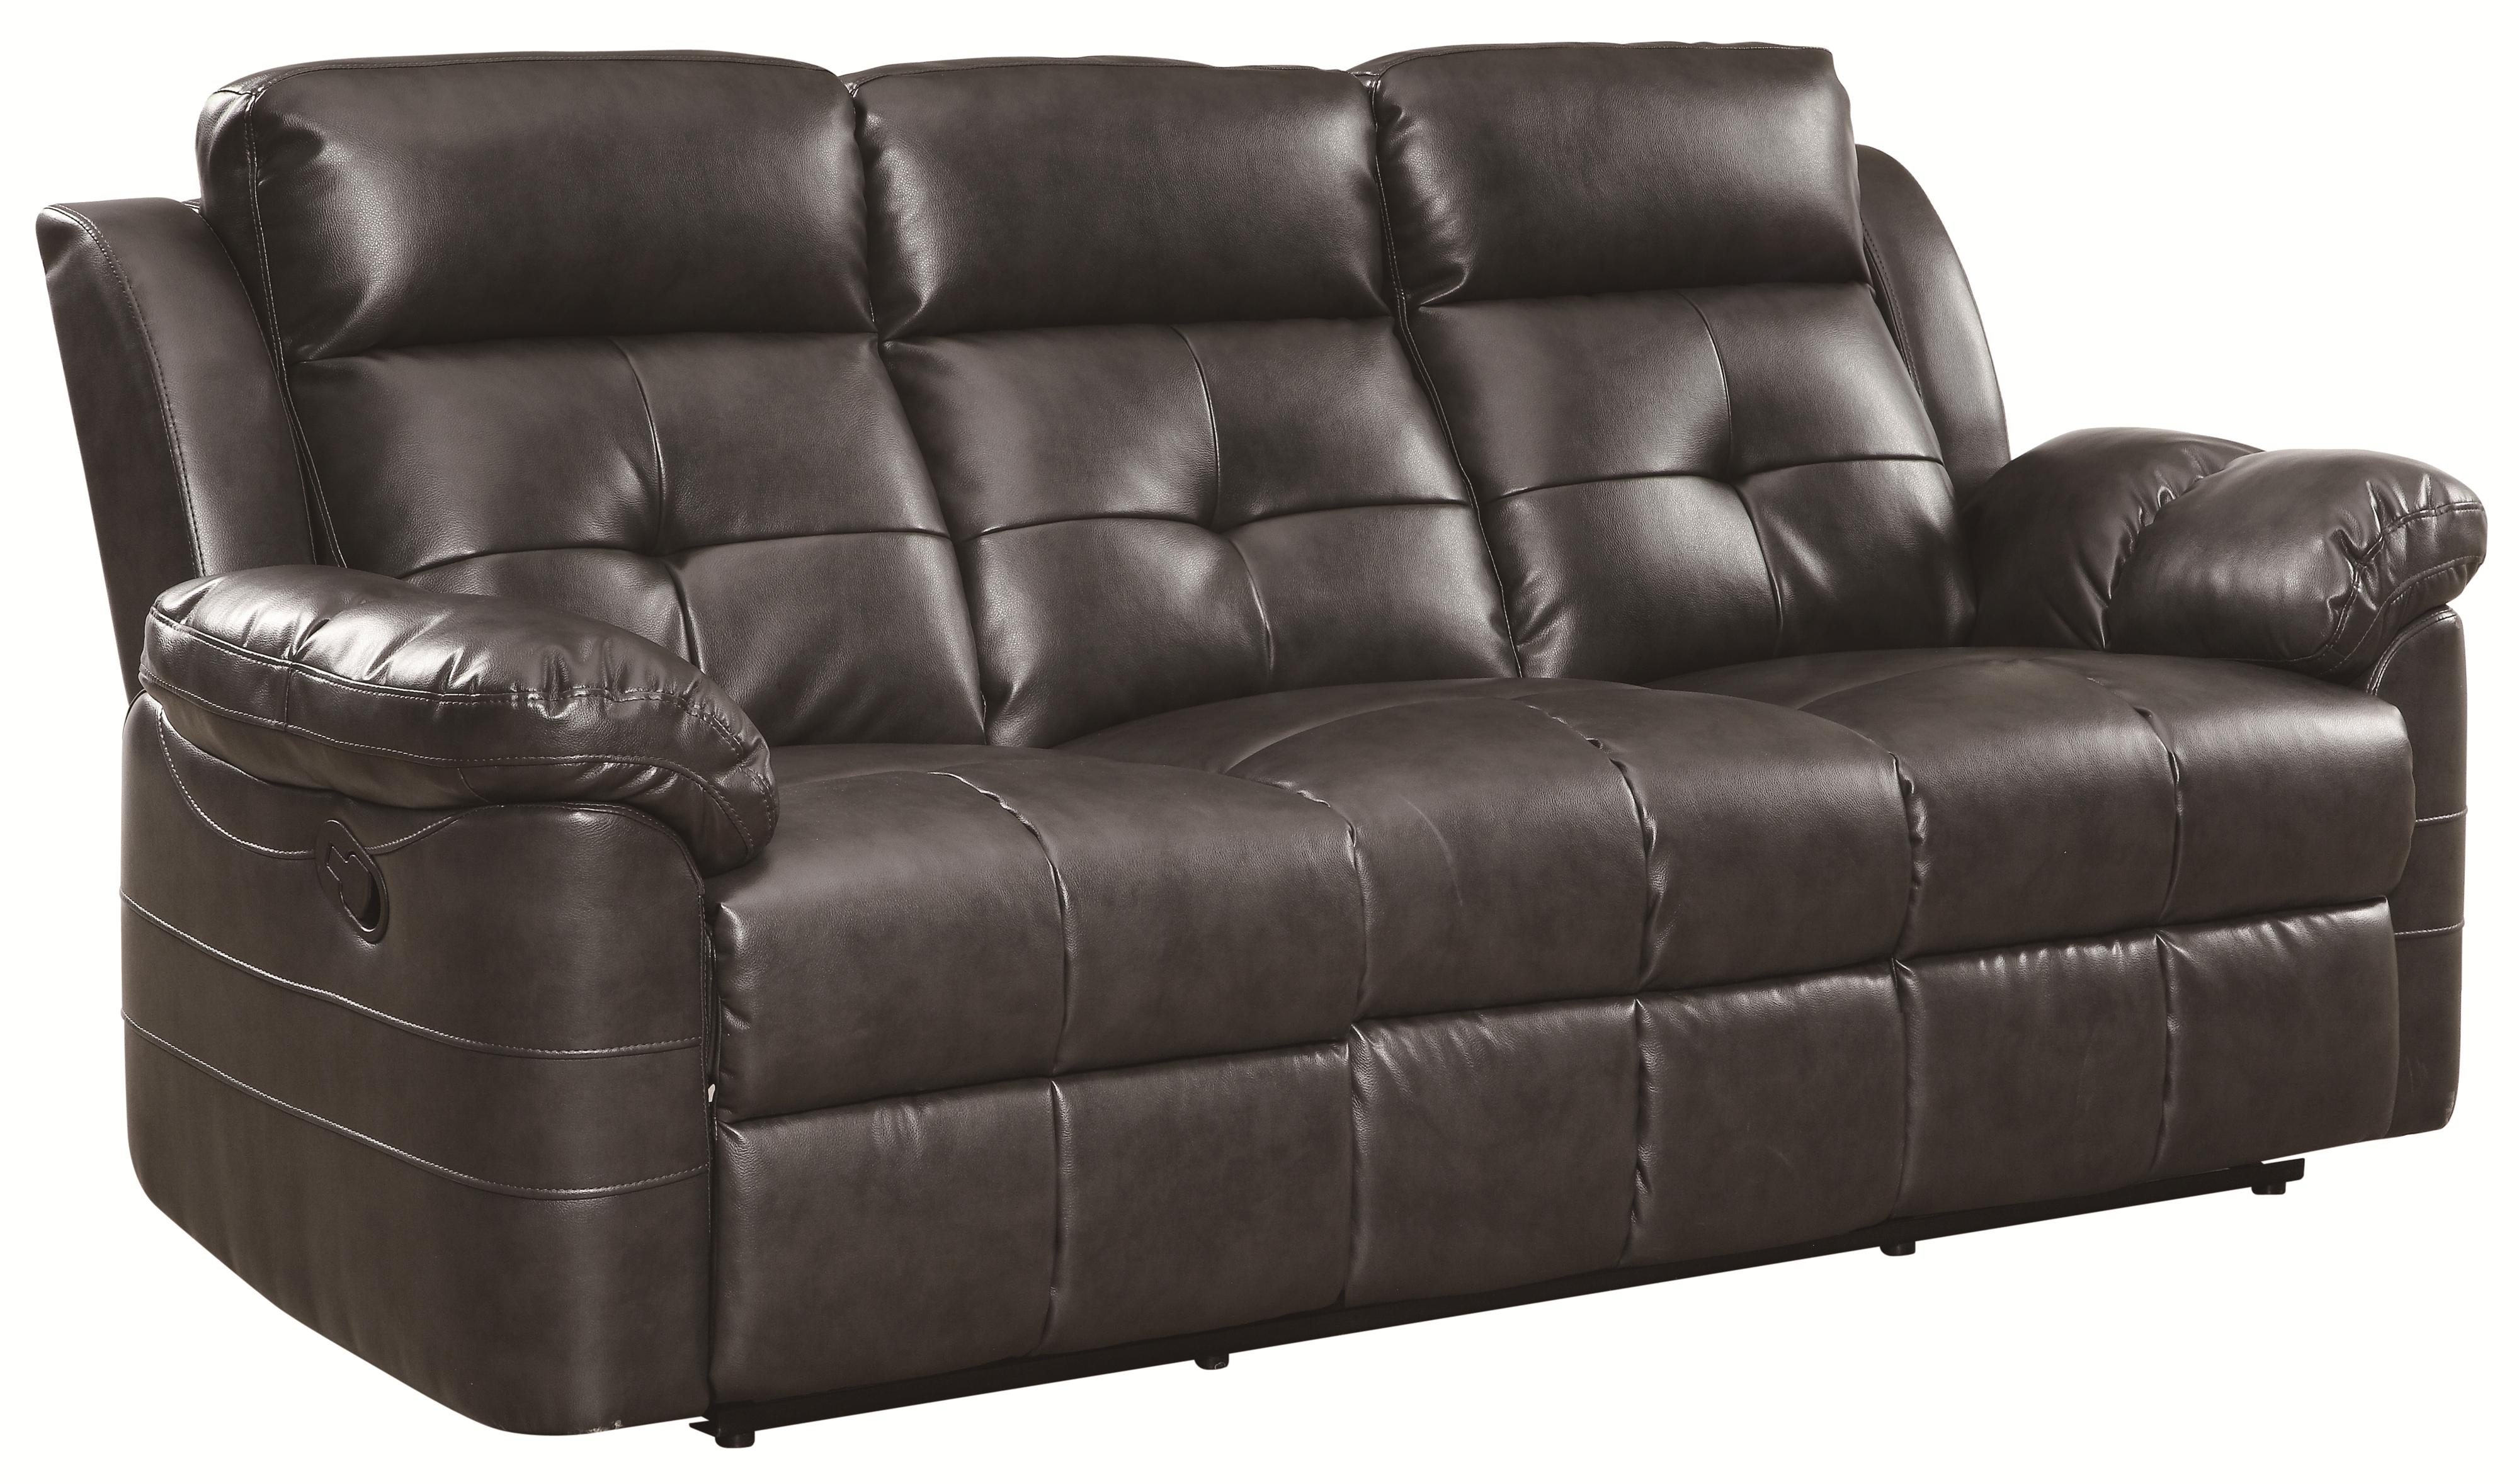 Keating contemporary, reclining motion sofa with headrests